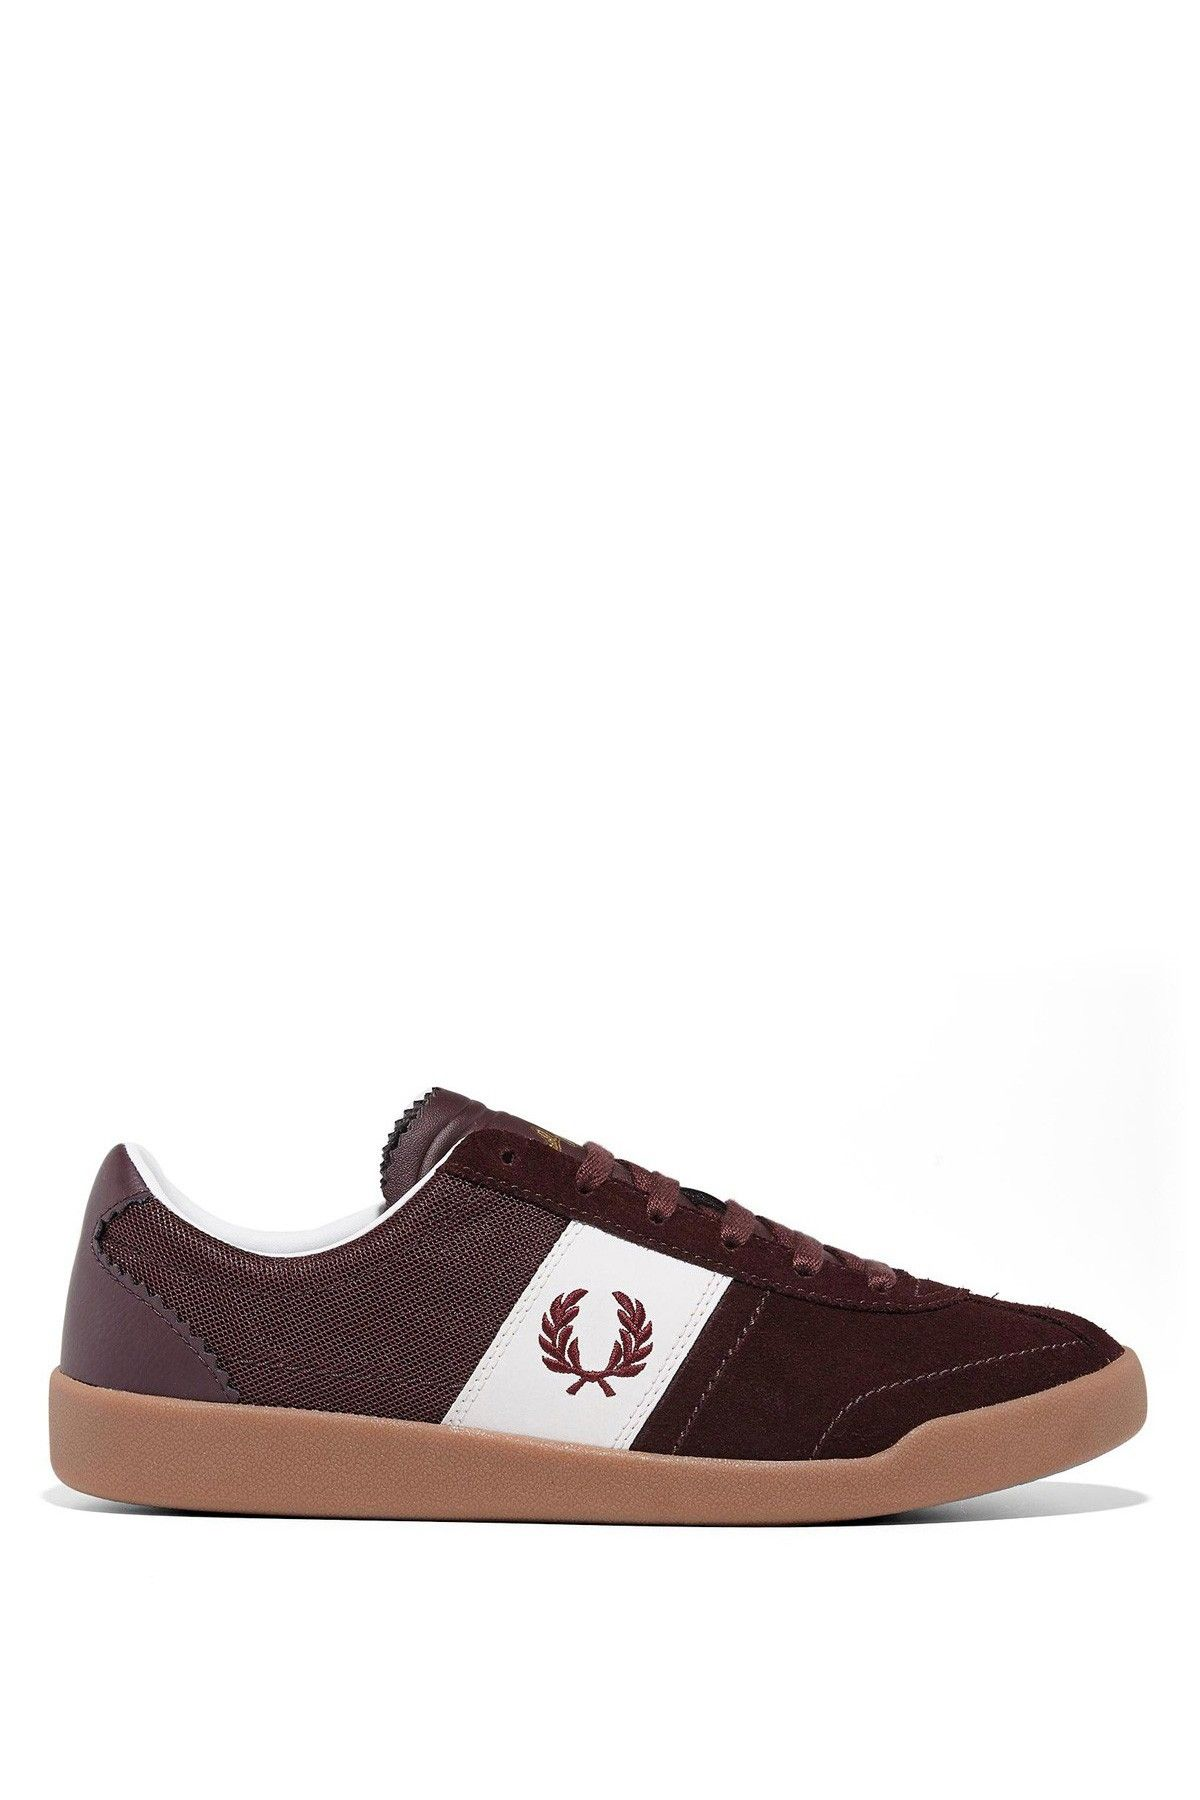 Buy Men Shoes / Fred Perry Stockport Suede Trainers